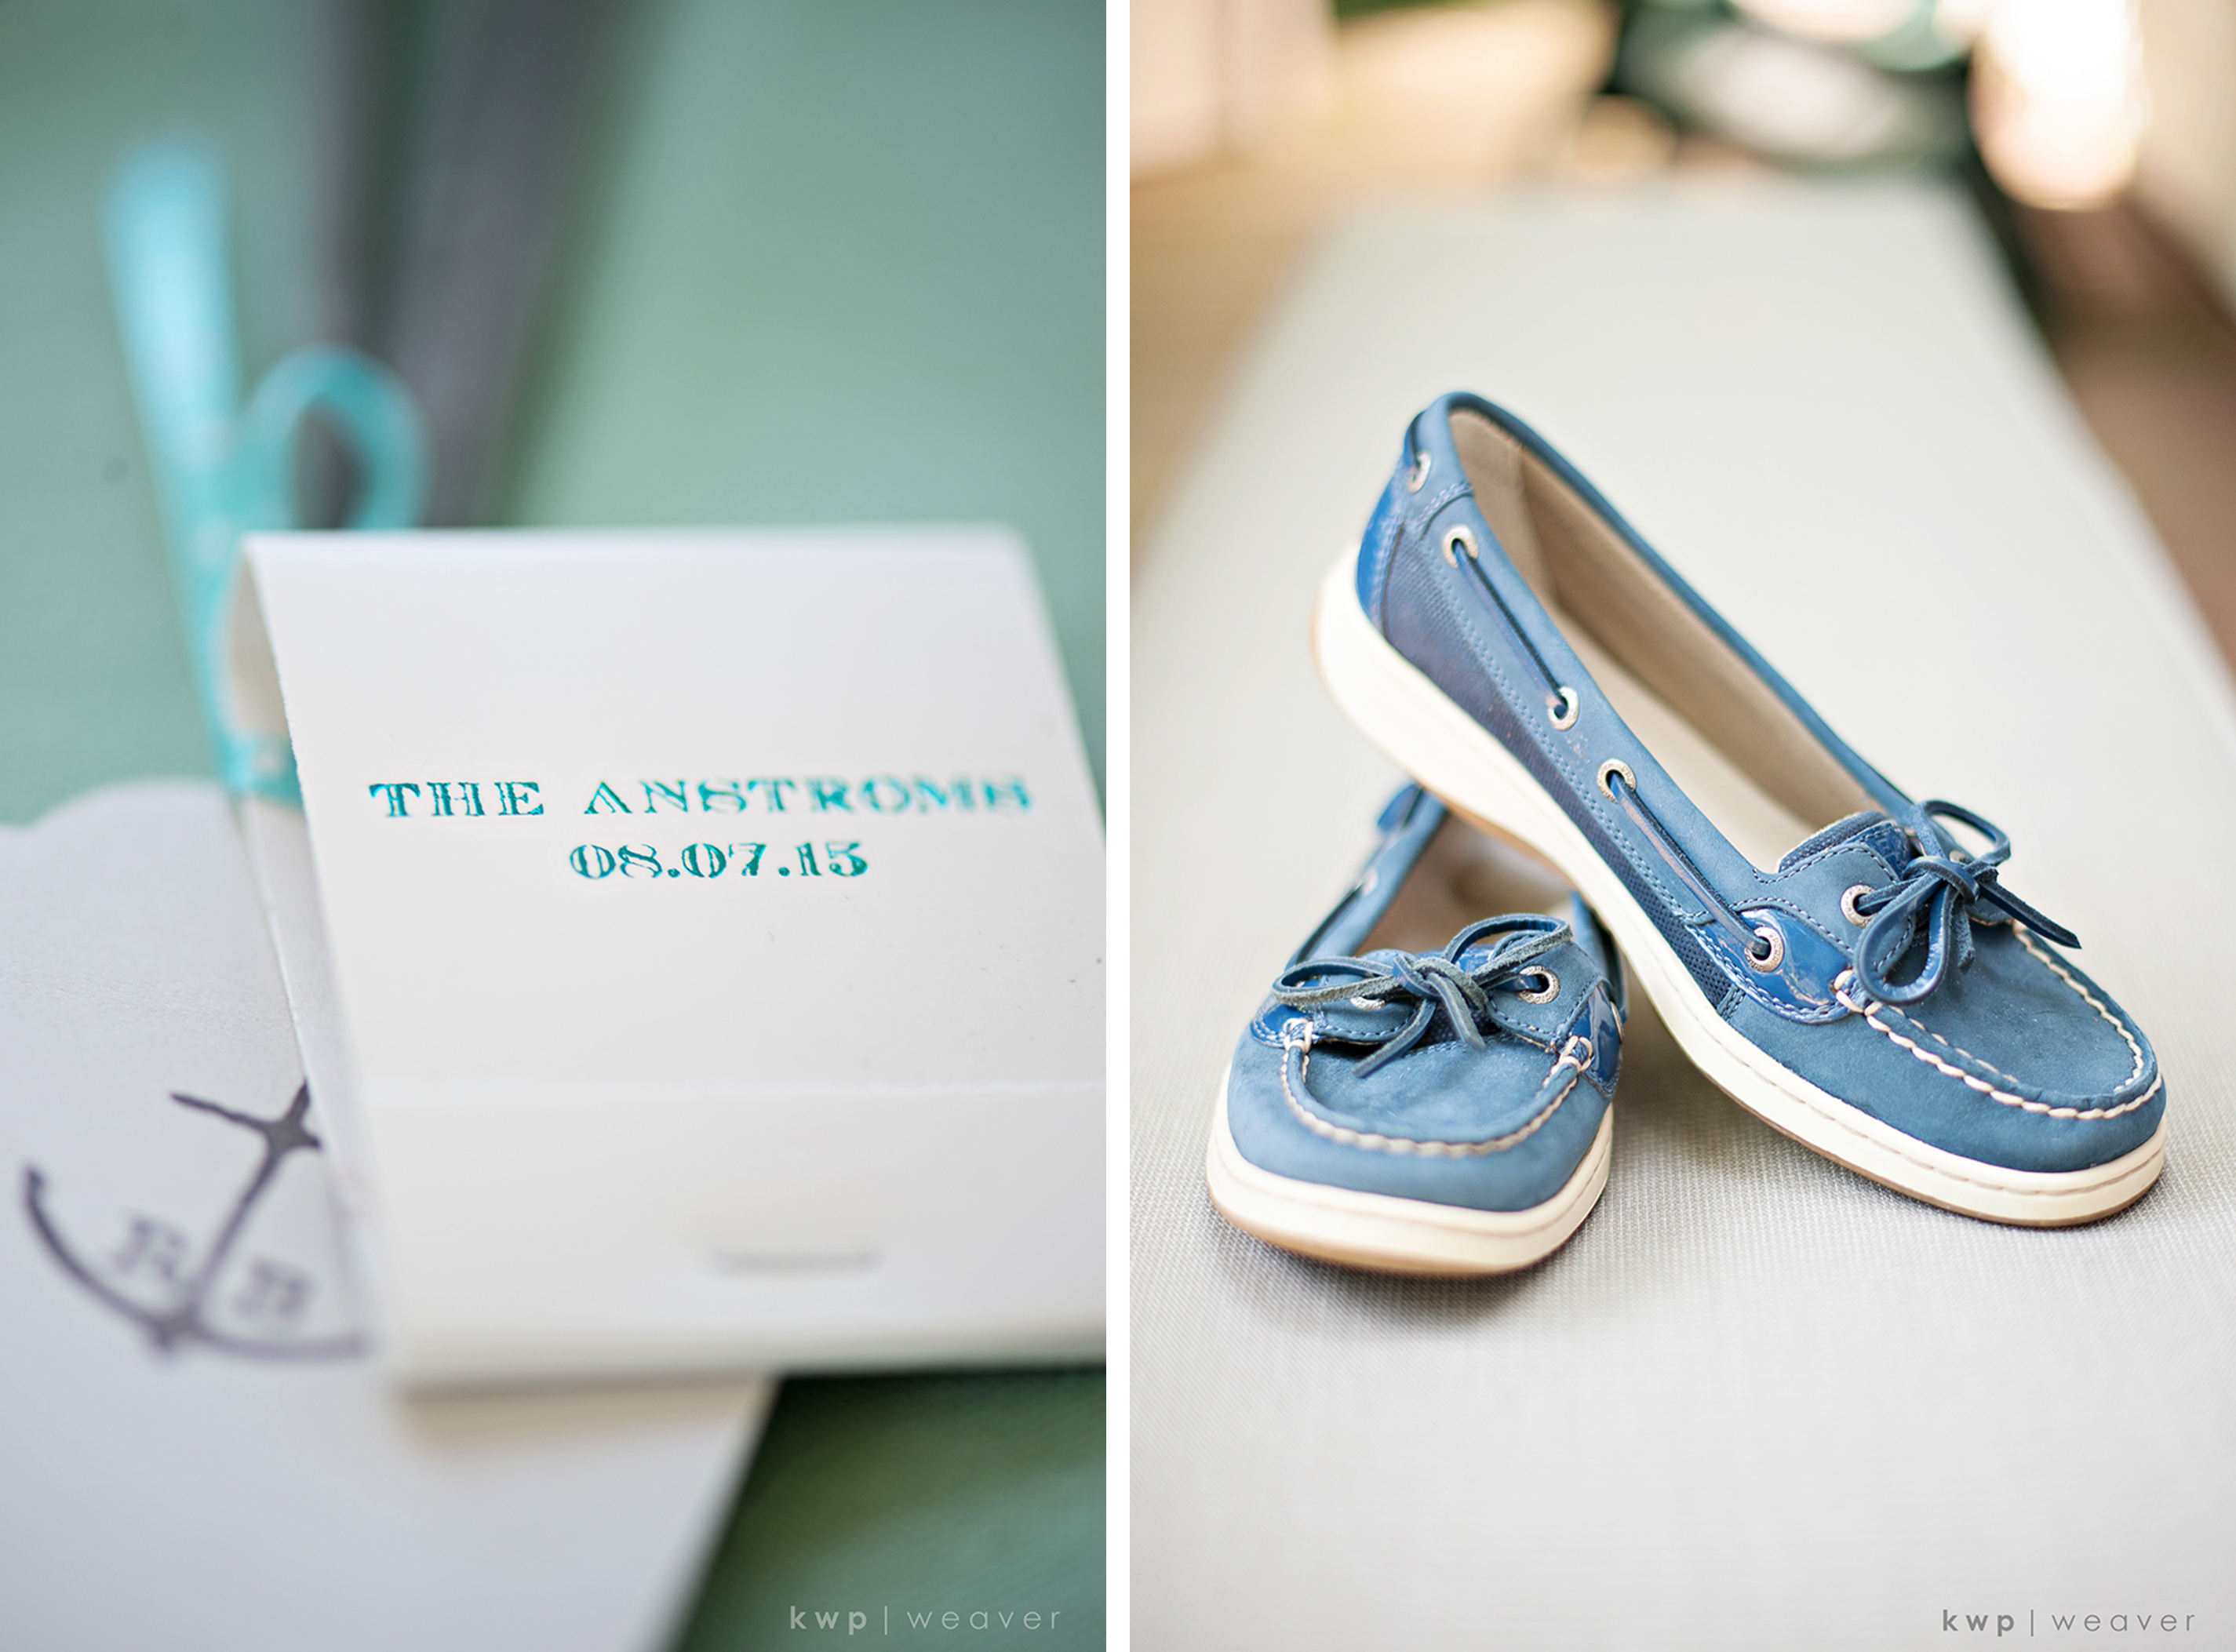 sperry wedding shoes